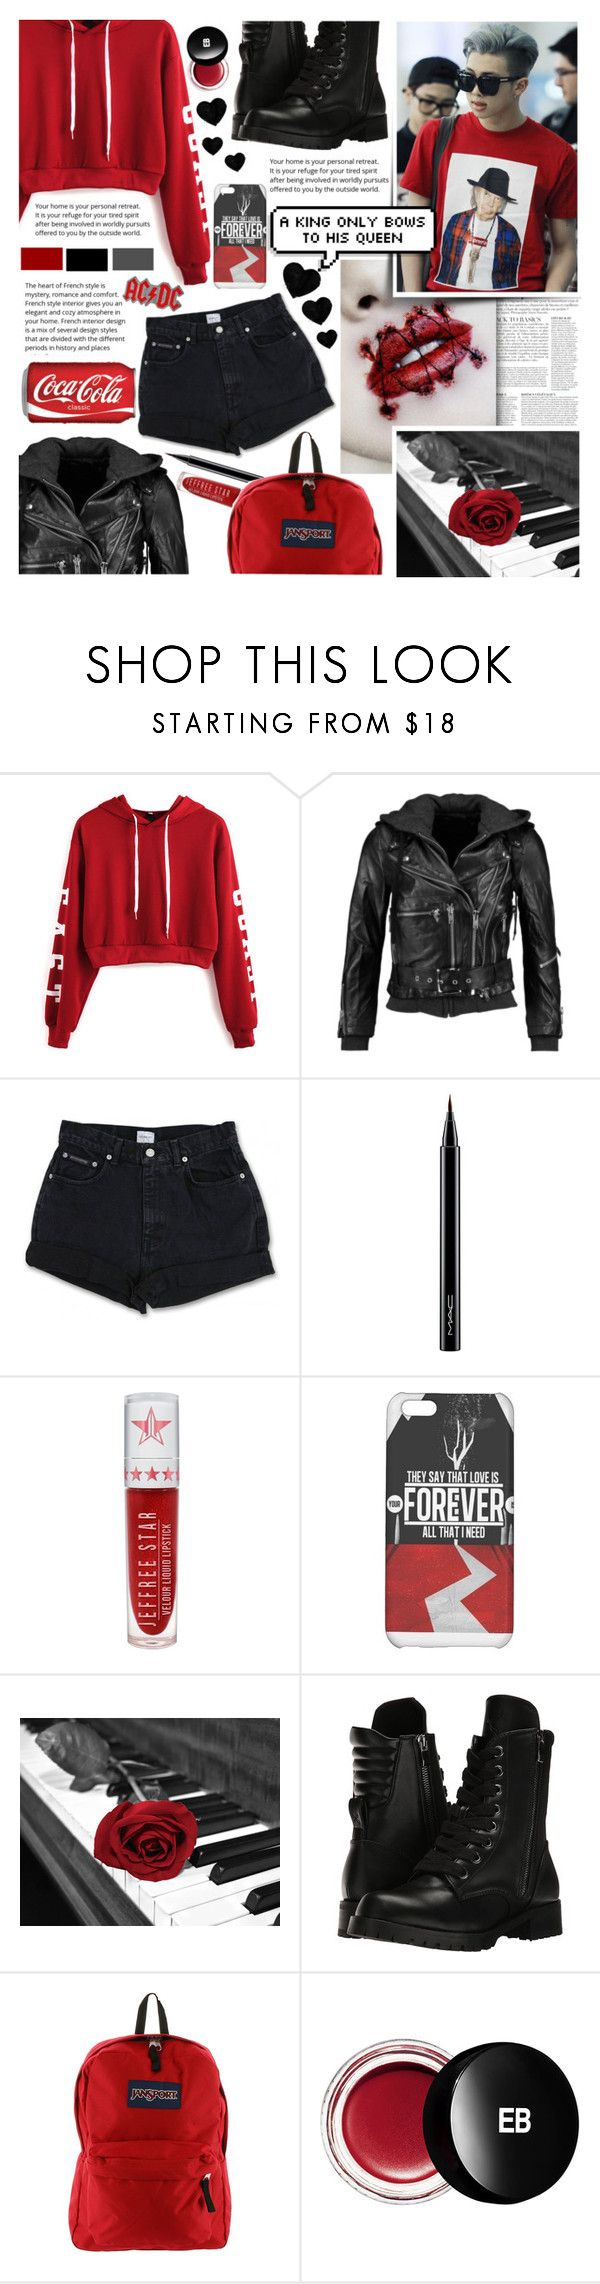 """Kim Namjoon / Rap Monster / God Of Destruction..."" by isabeldizova ❤ liked on Polyvore featuring Anja, WithChic, R13, Calvin Klein, MAC Cosmetics, Jeffree Star, Capezio, JanSport, Edward Bess and AC/DC"